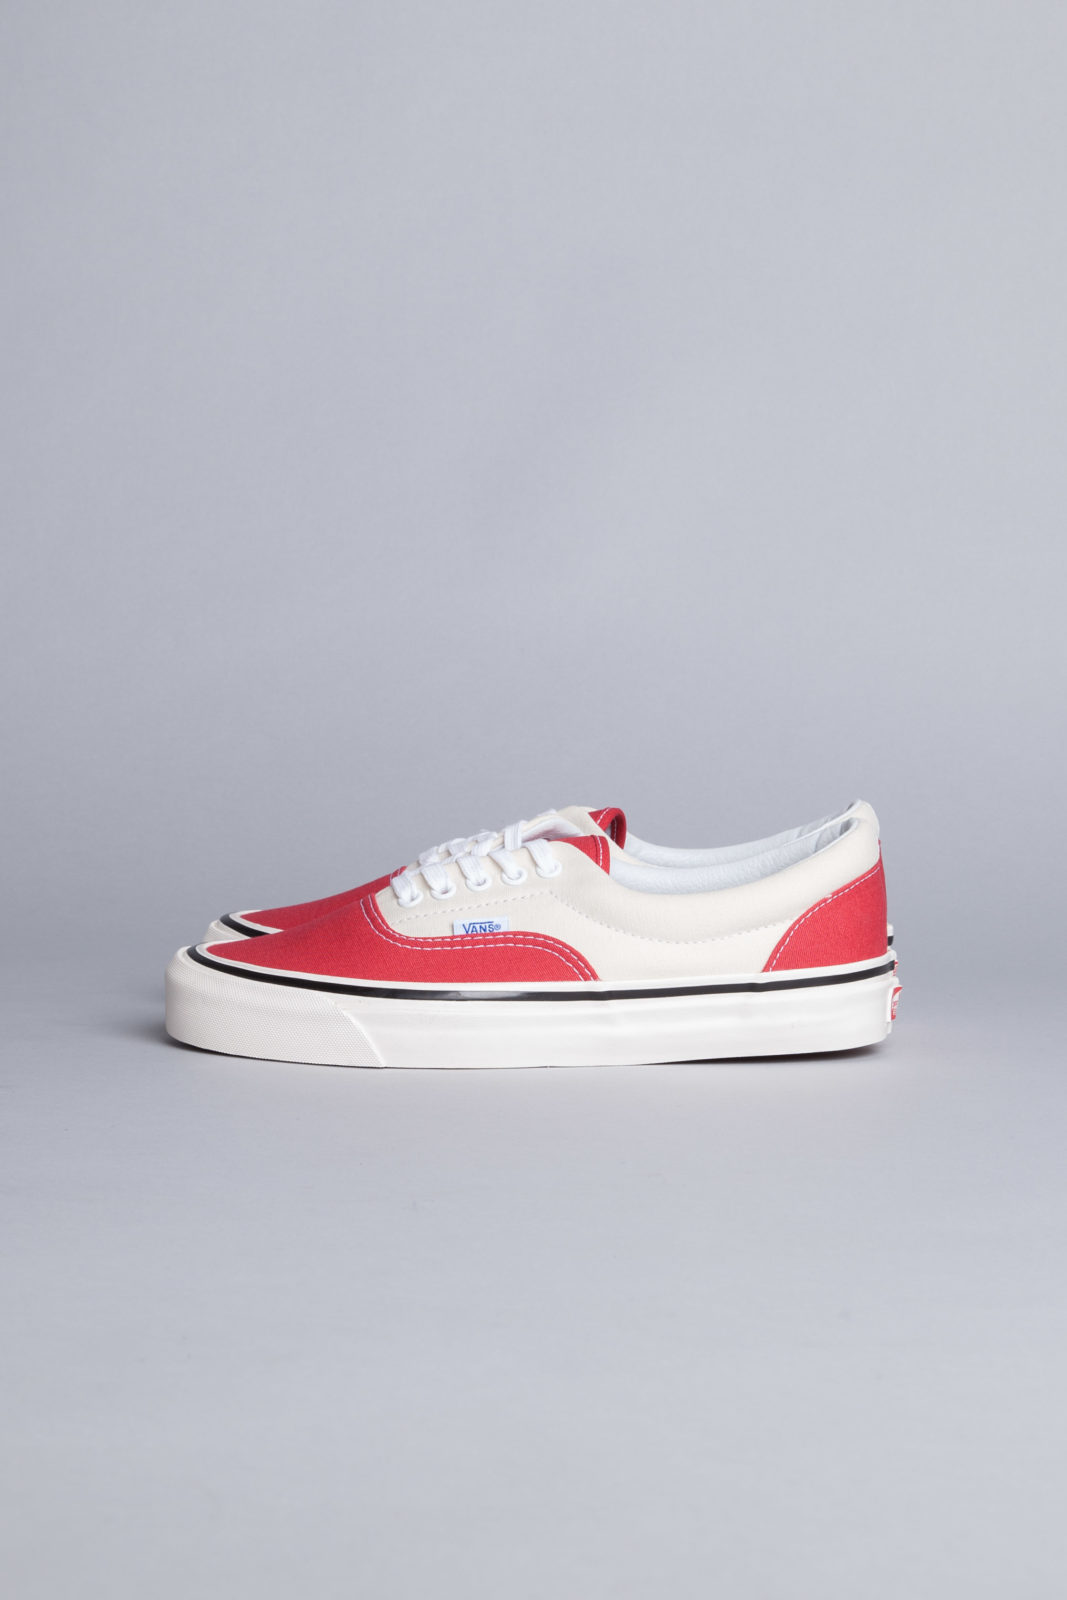 c8da4602d2 Vans Era 95 DX OG Red White • Centreville Store in Brussels